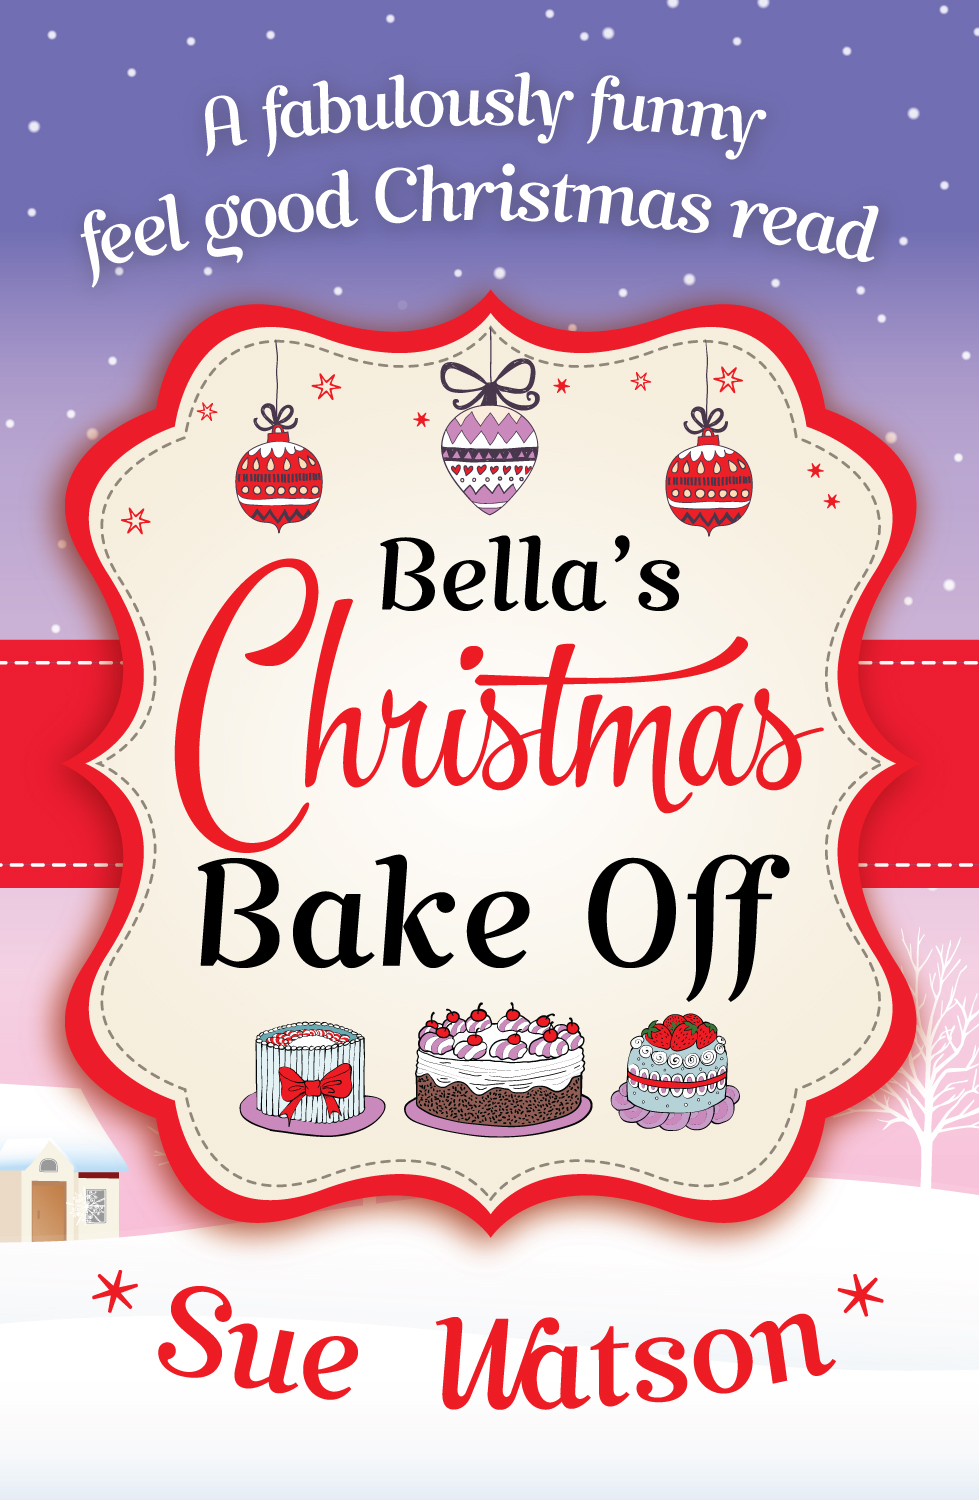 Bellas-Christmas-Bake-Off-FINAL